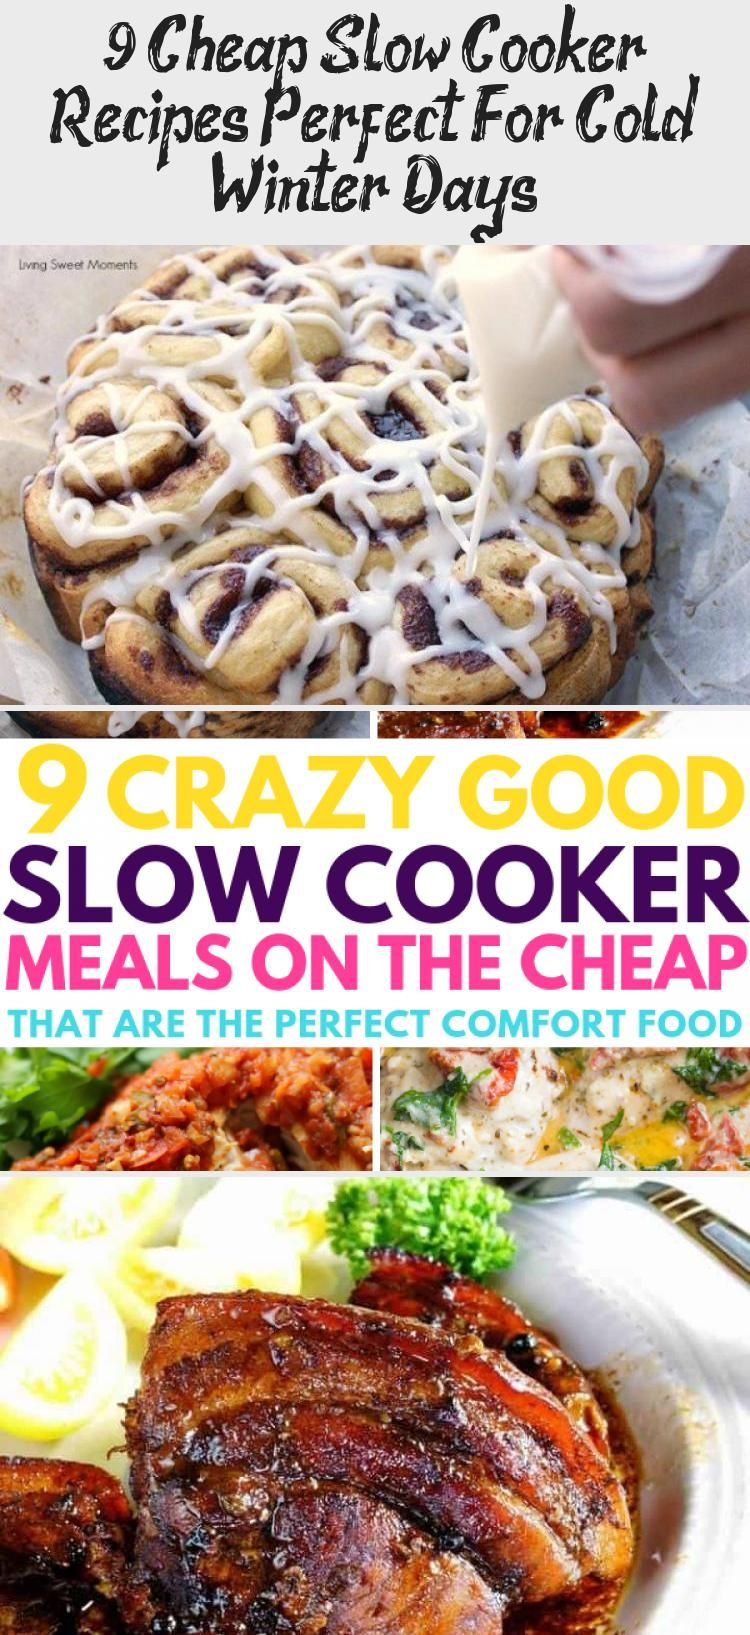 9 cheap slow cooker recipes perfect for cold winter days